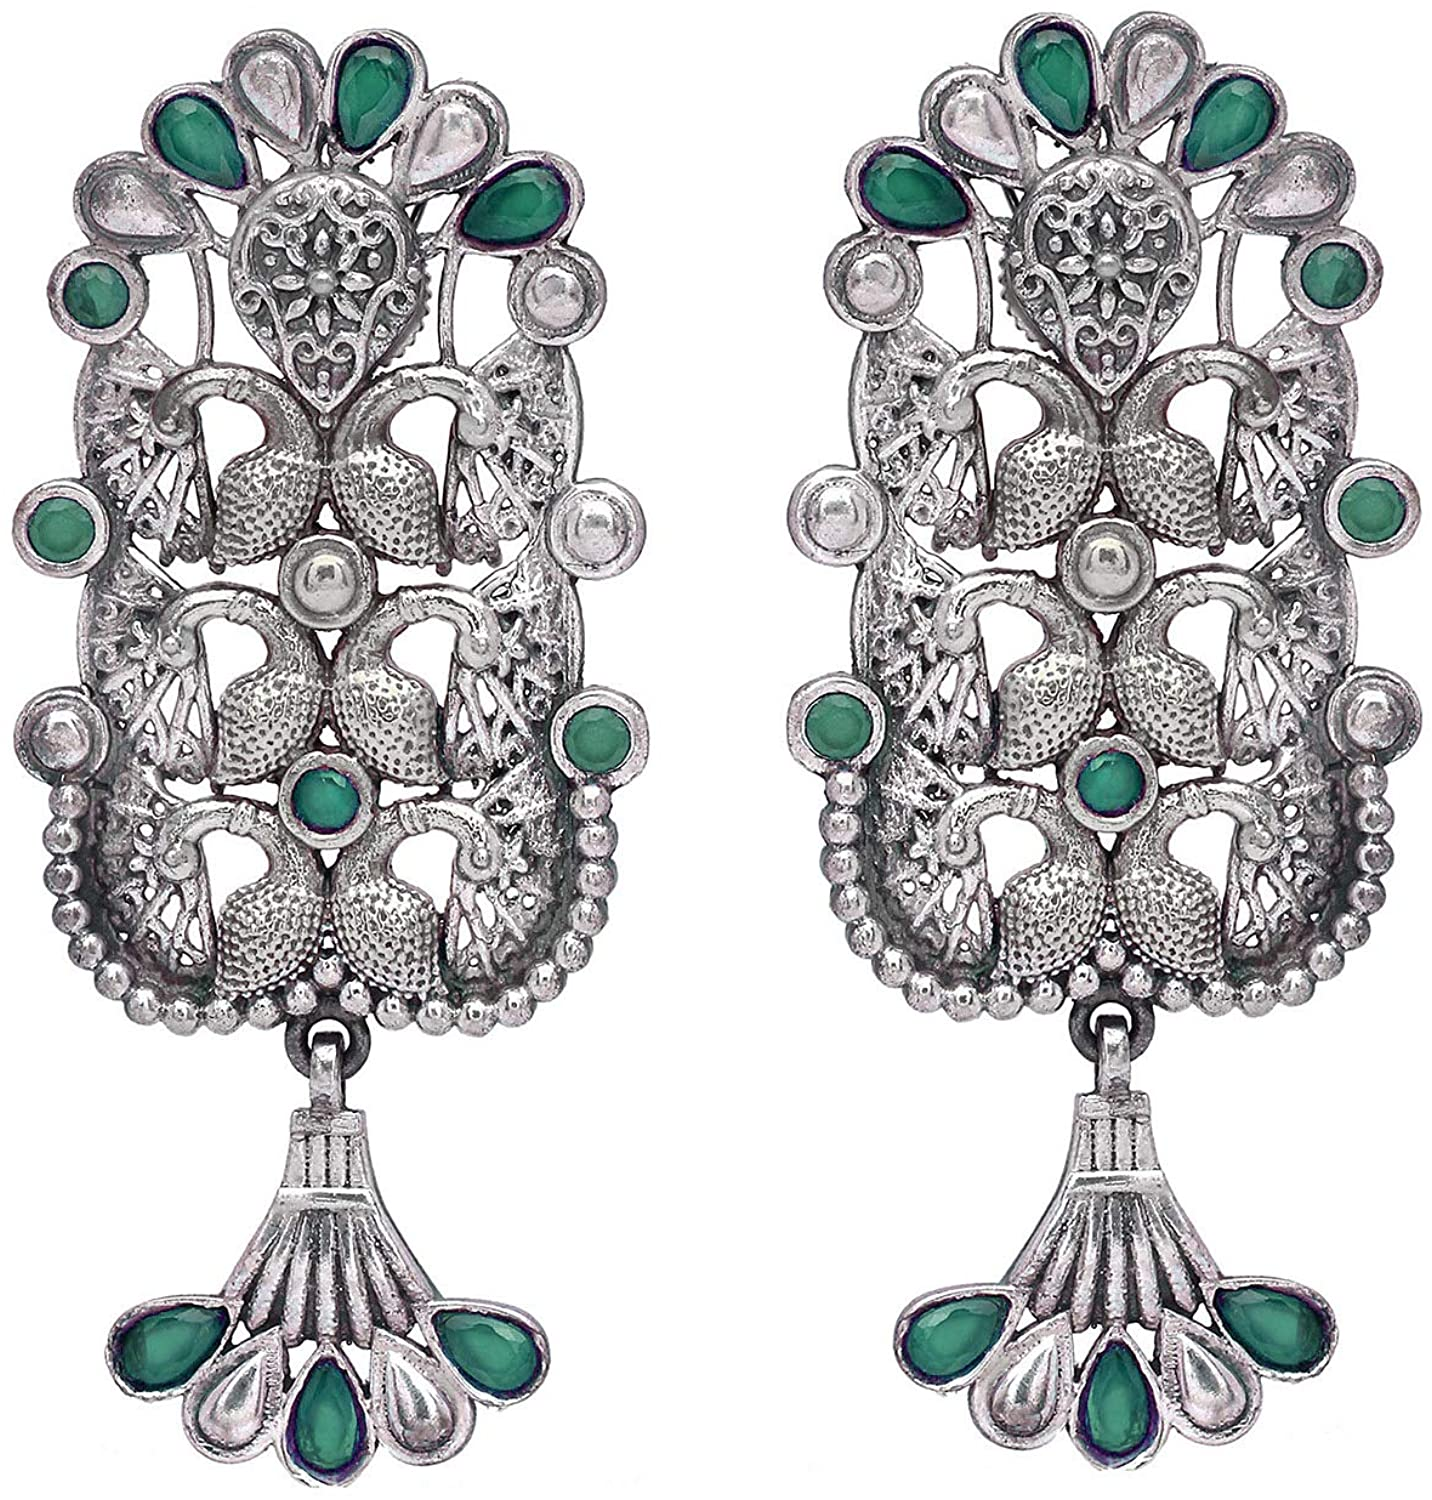 Aheli Ethnic Vintage Bohemian Style Indian Oxidized Finish Dangle Earrings Bollywood Wedding Traditional Jewelry for Women Girls